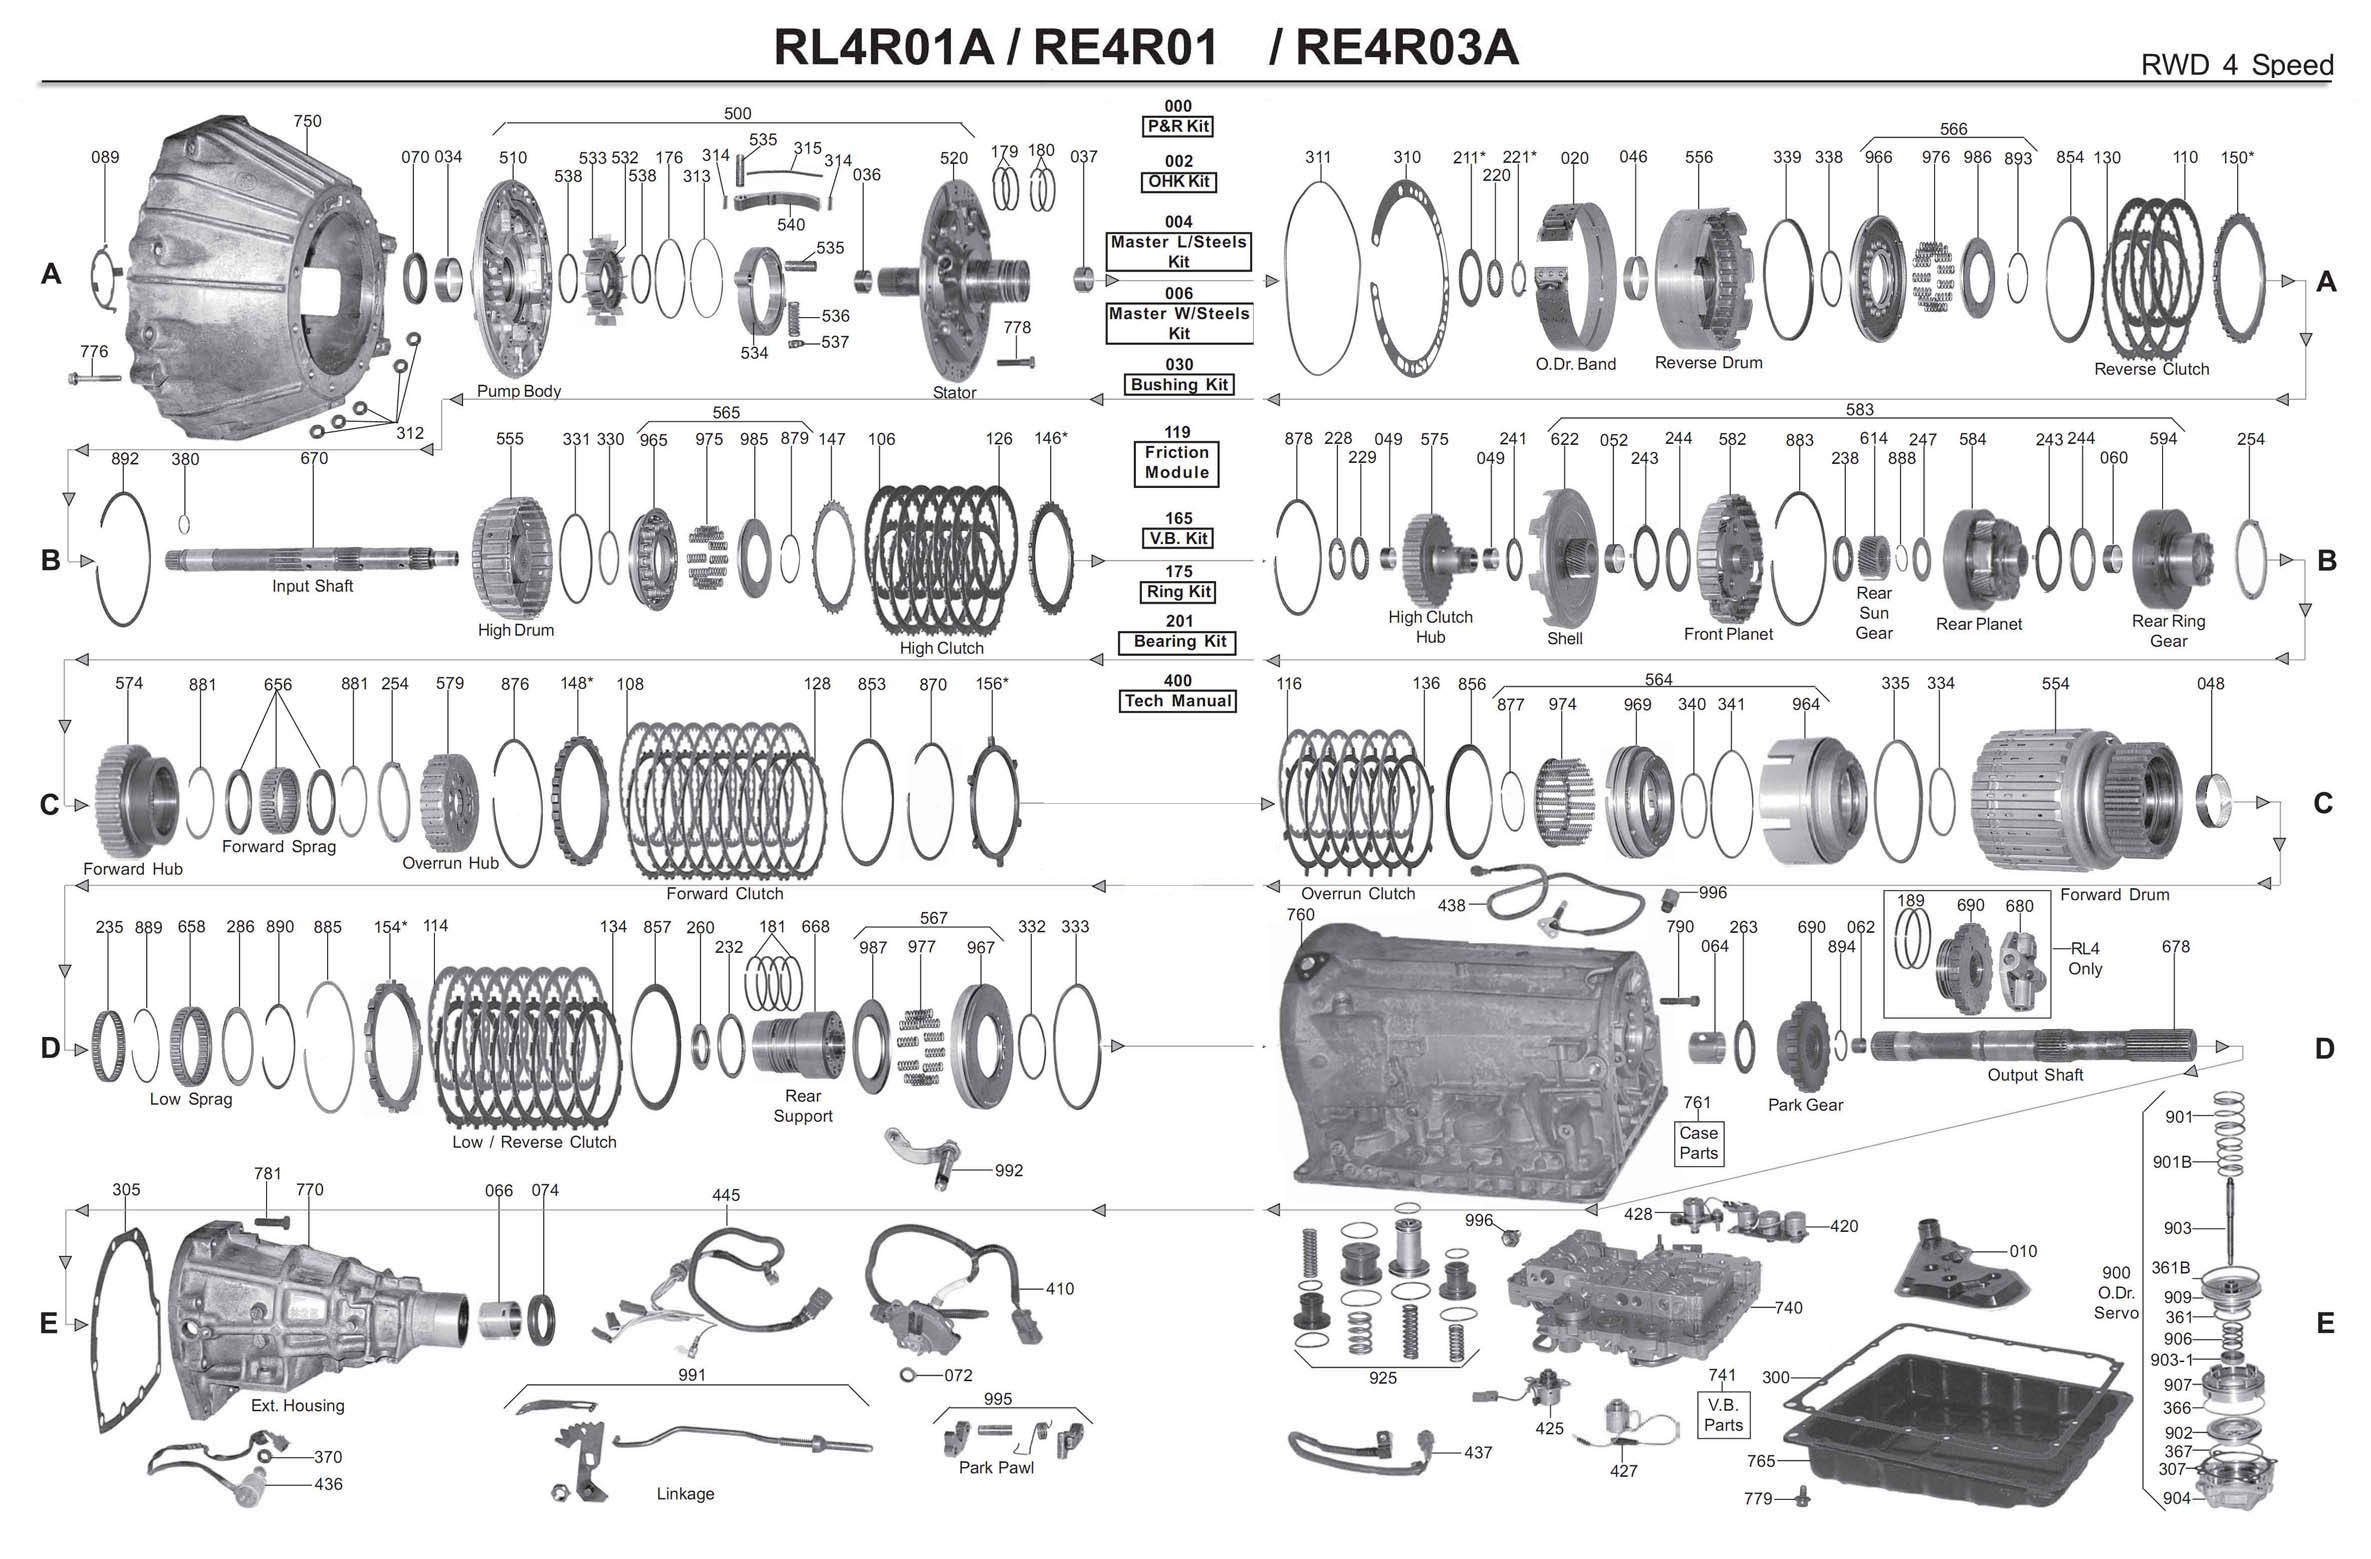 RE4R01A Transmission parts, repair guidelines, problems